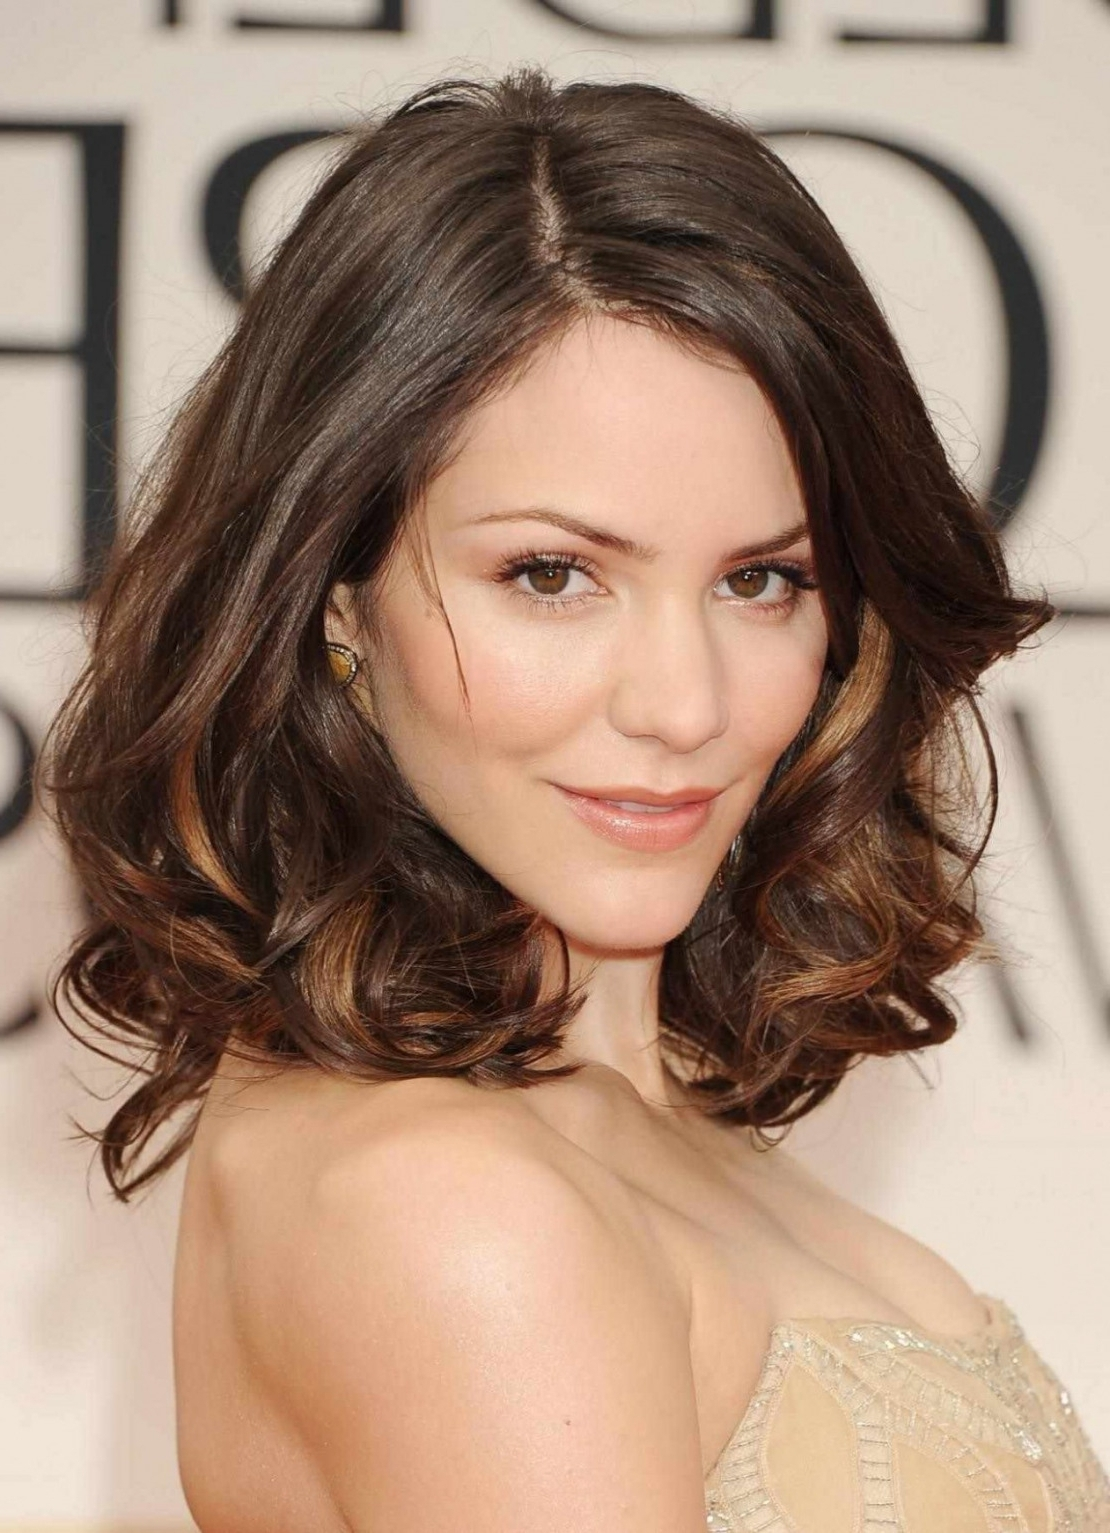 Wedding Hairstyles For Medium Length Hair Round Face Archives – A Throughout Most Recent Wedding Hairstyles For Round Face With Medium Length Hair (View 7 of 15)